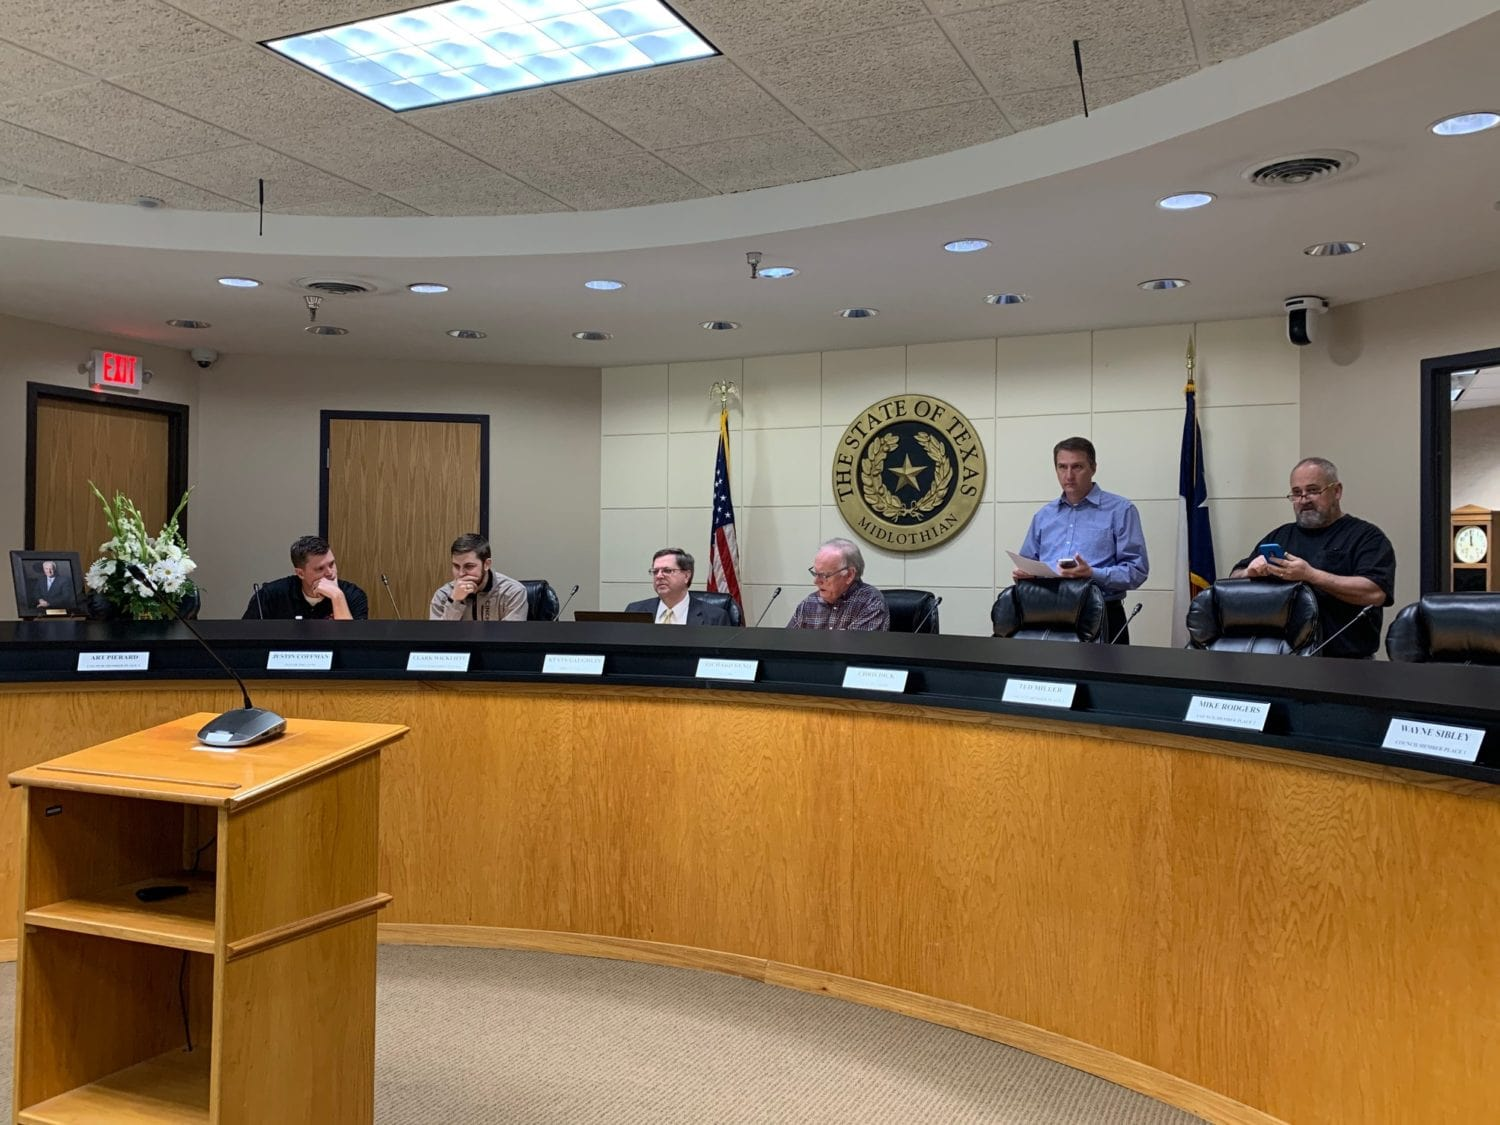 Last night, the Midlothian City Council unanimously approved a 14-day declaration of state of local disaster at its regular meeting.